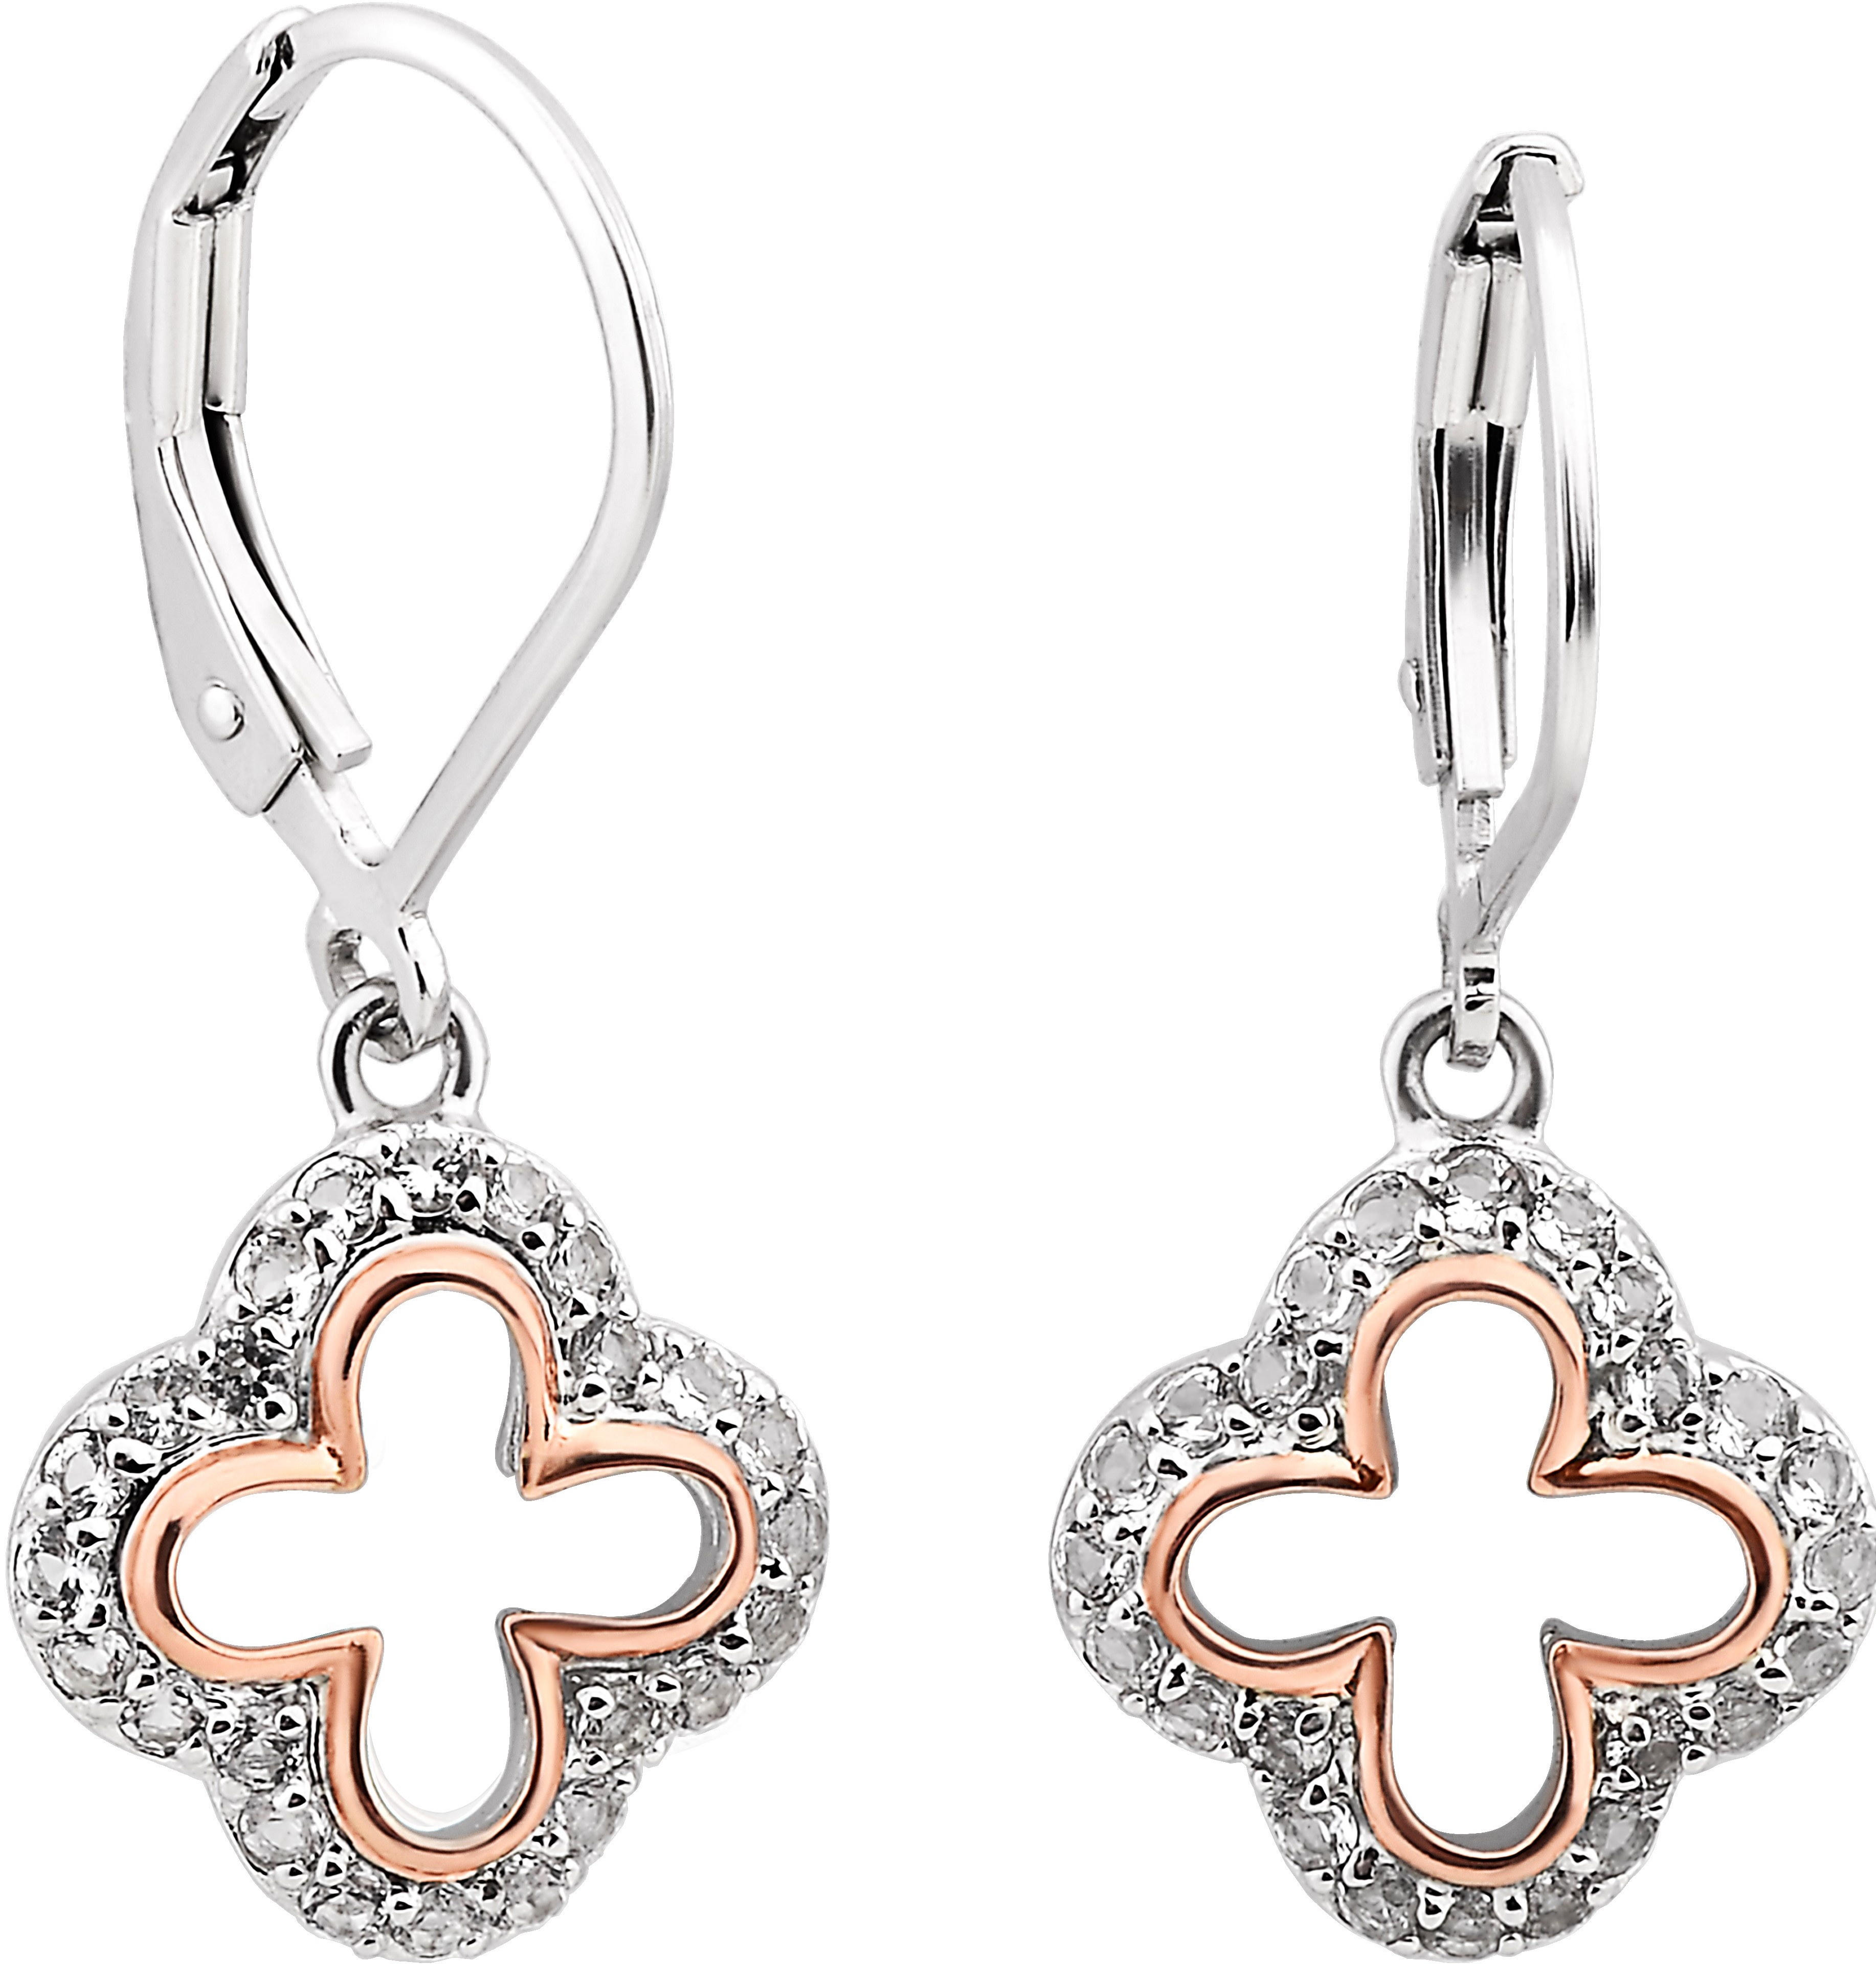 69dfaf238 Clogau 'Historic Royal Palaces – Tudor Court' Pendant (£169), Earrings  (£169) and Ring (£99)